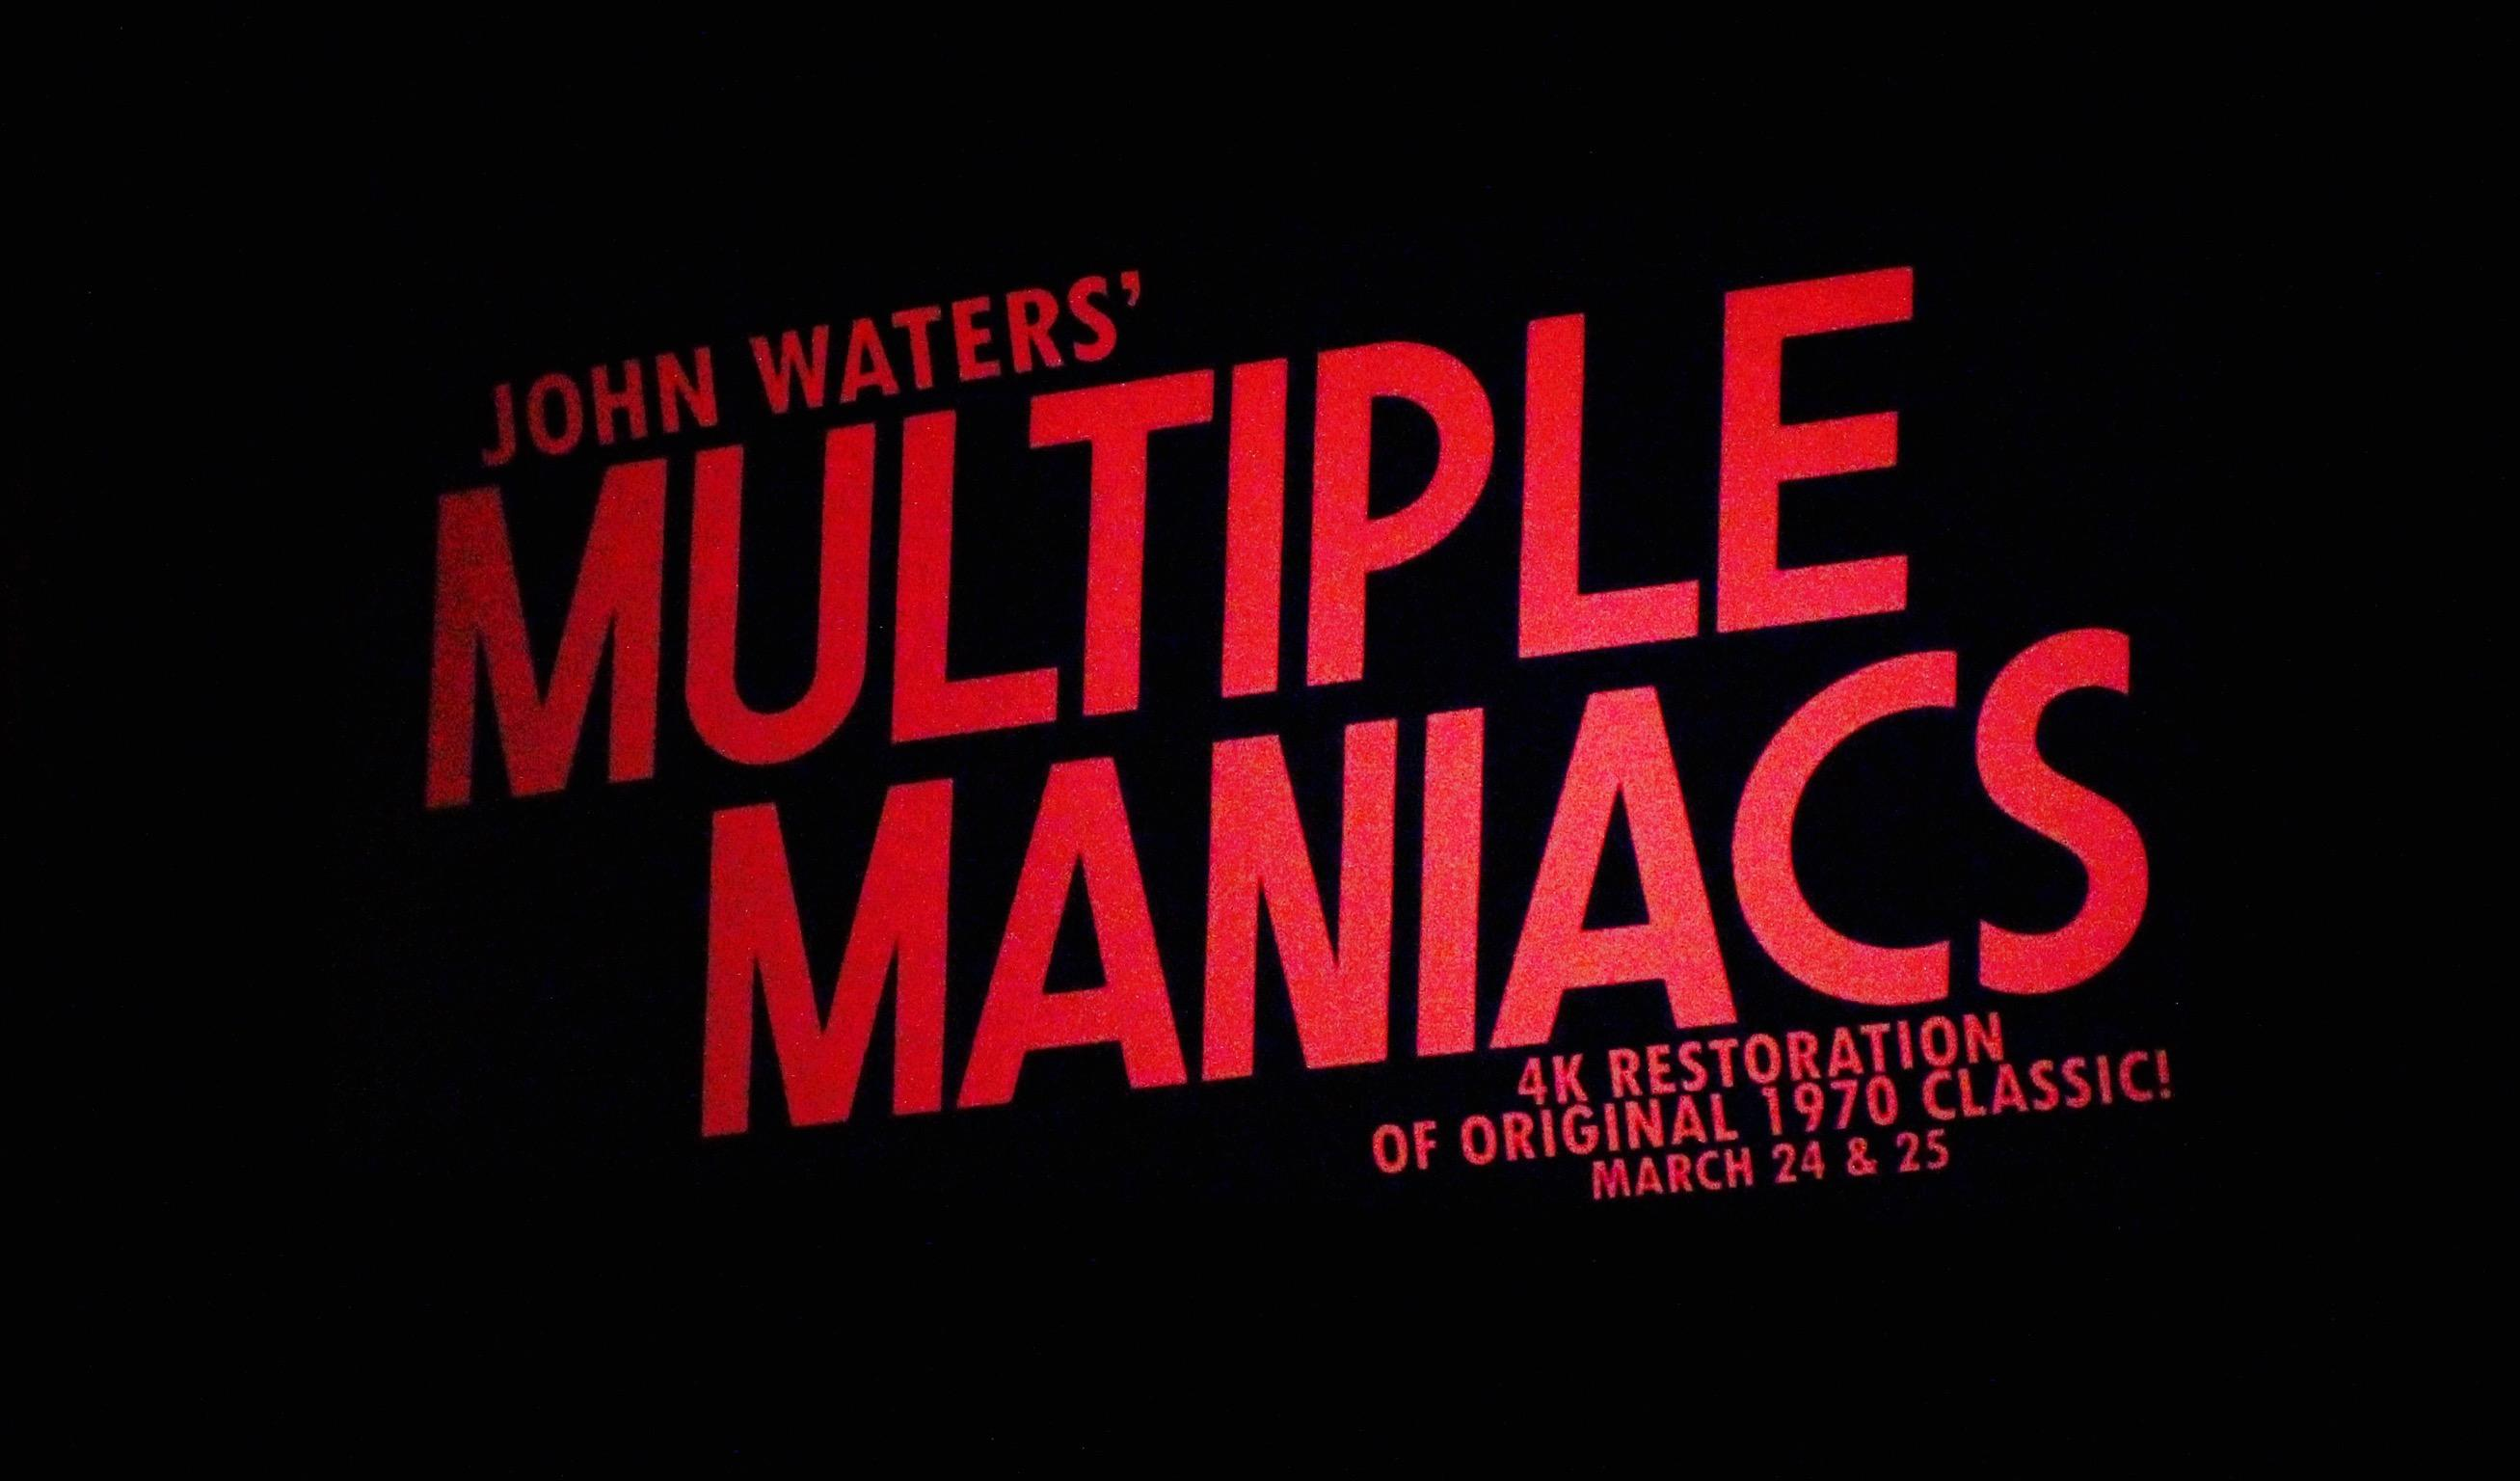 Multiple+Maniacs%2C+by+John+Waters%27+was+featured+on+the+big+screen+during+the+month+of+March.